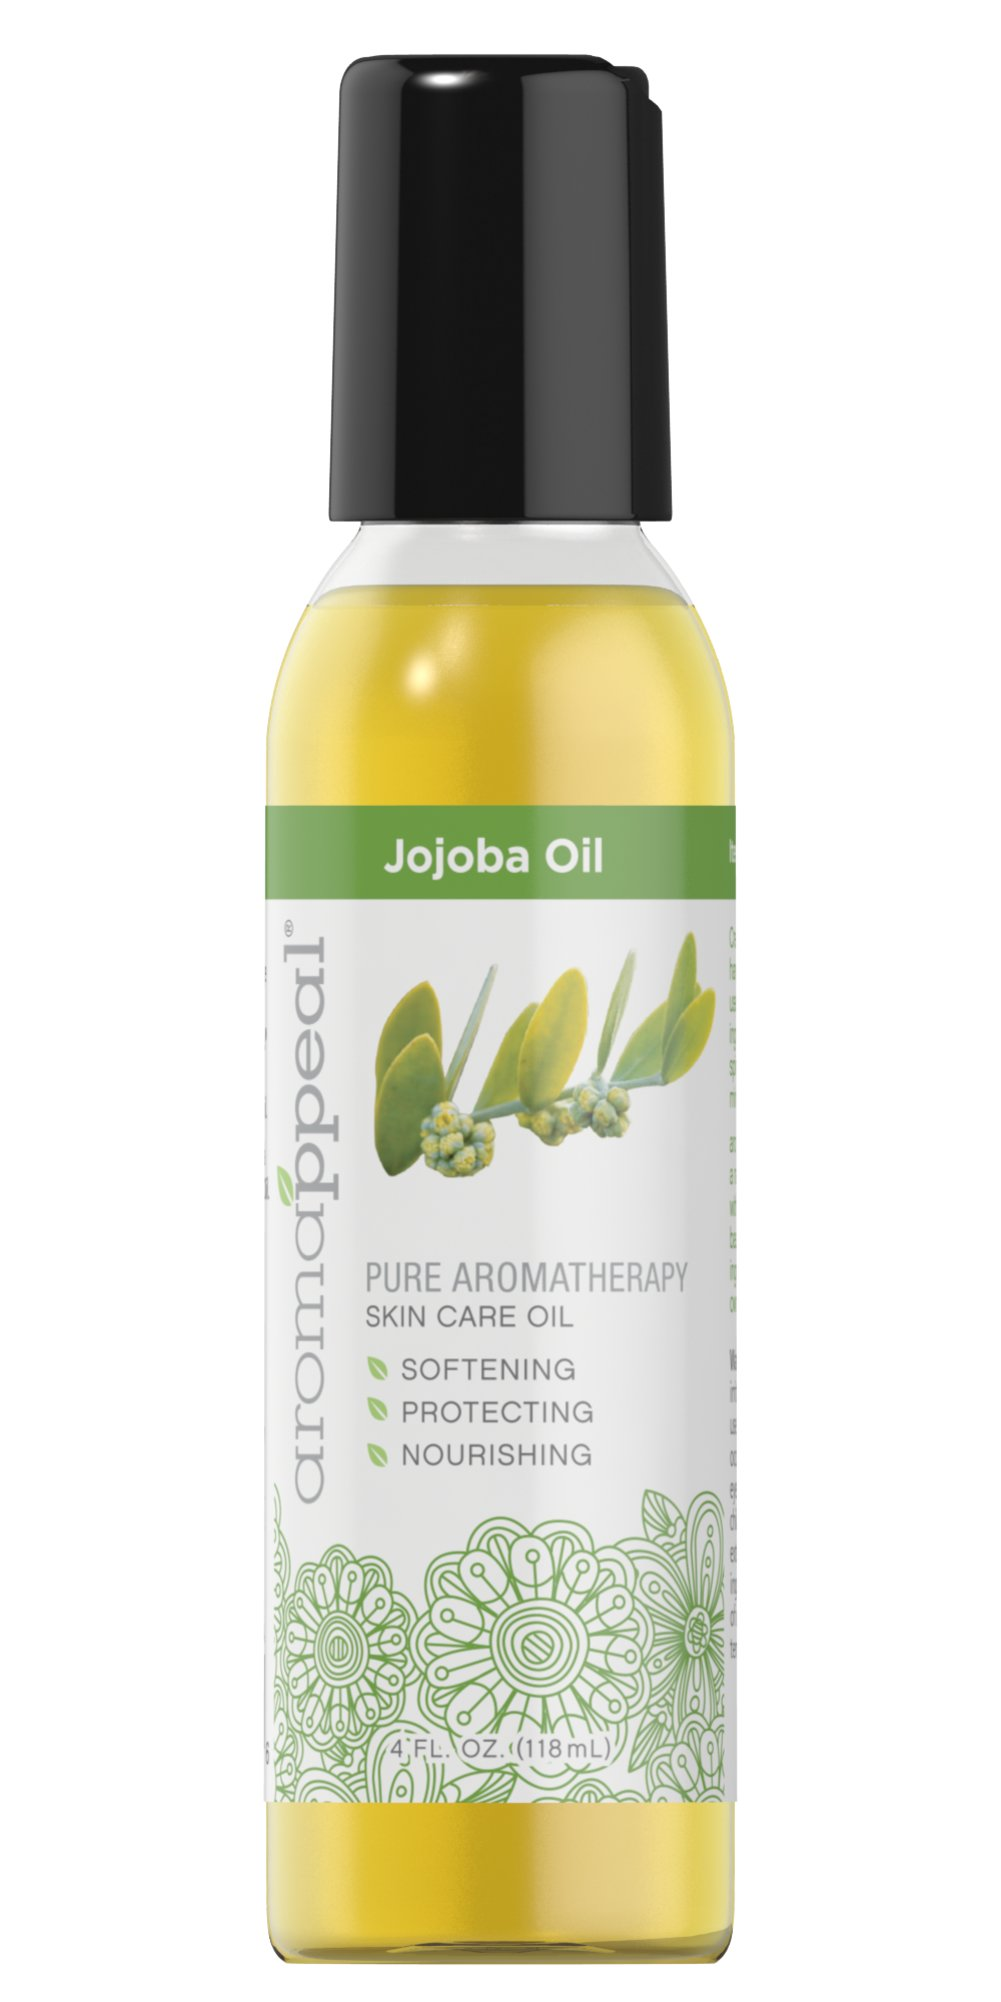 Jojoba Carrier Oil Thumbnail Alternate Bottle View